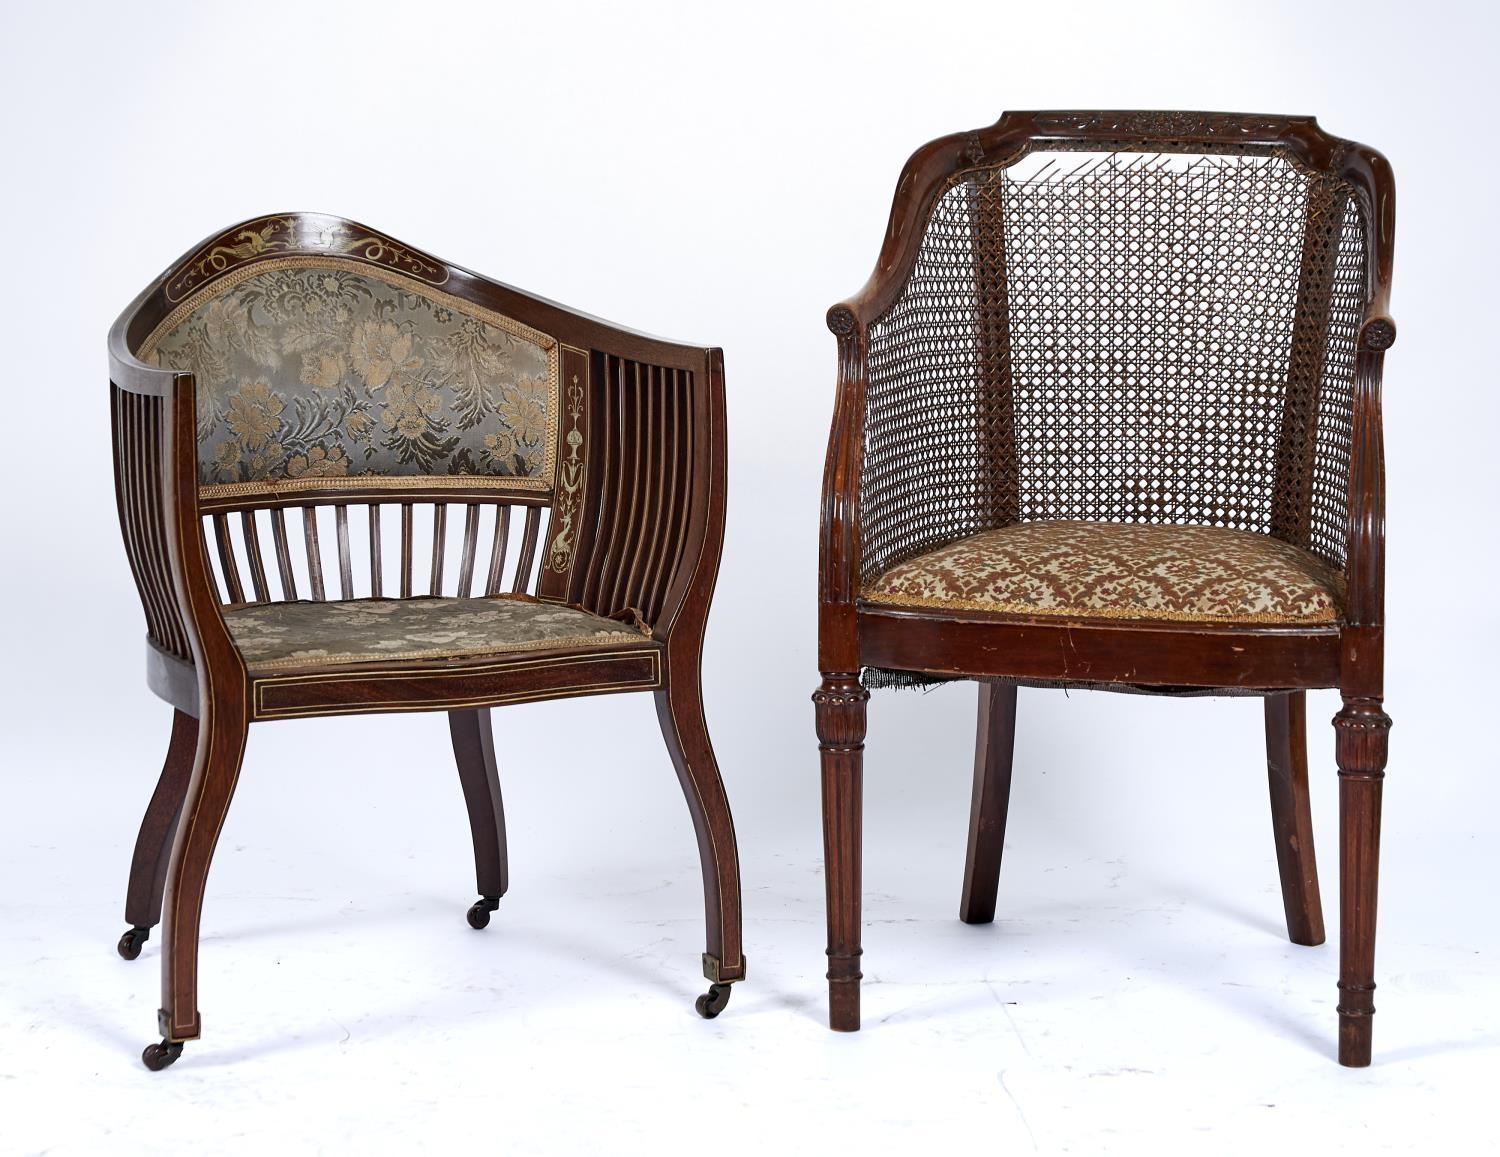 A LATE VICTORIAN SALON TUB CHAIR, C1895, INLAID OVERALL WITH IVORY STRINGING, THE BACK WITH PANEL